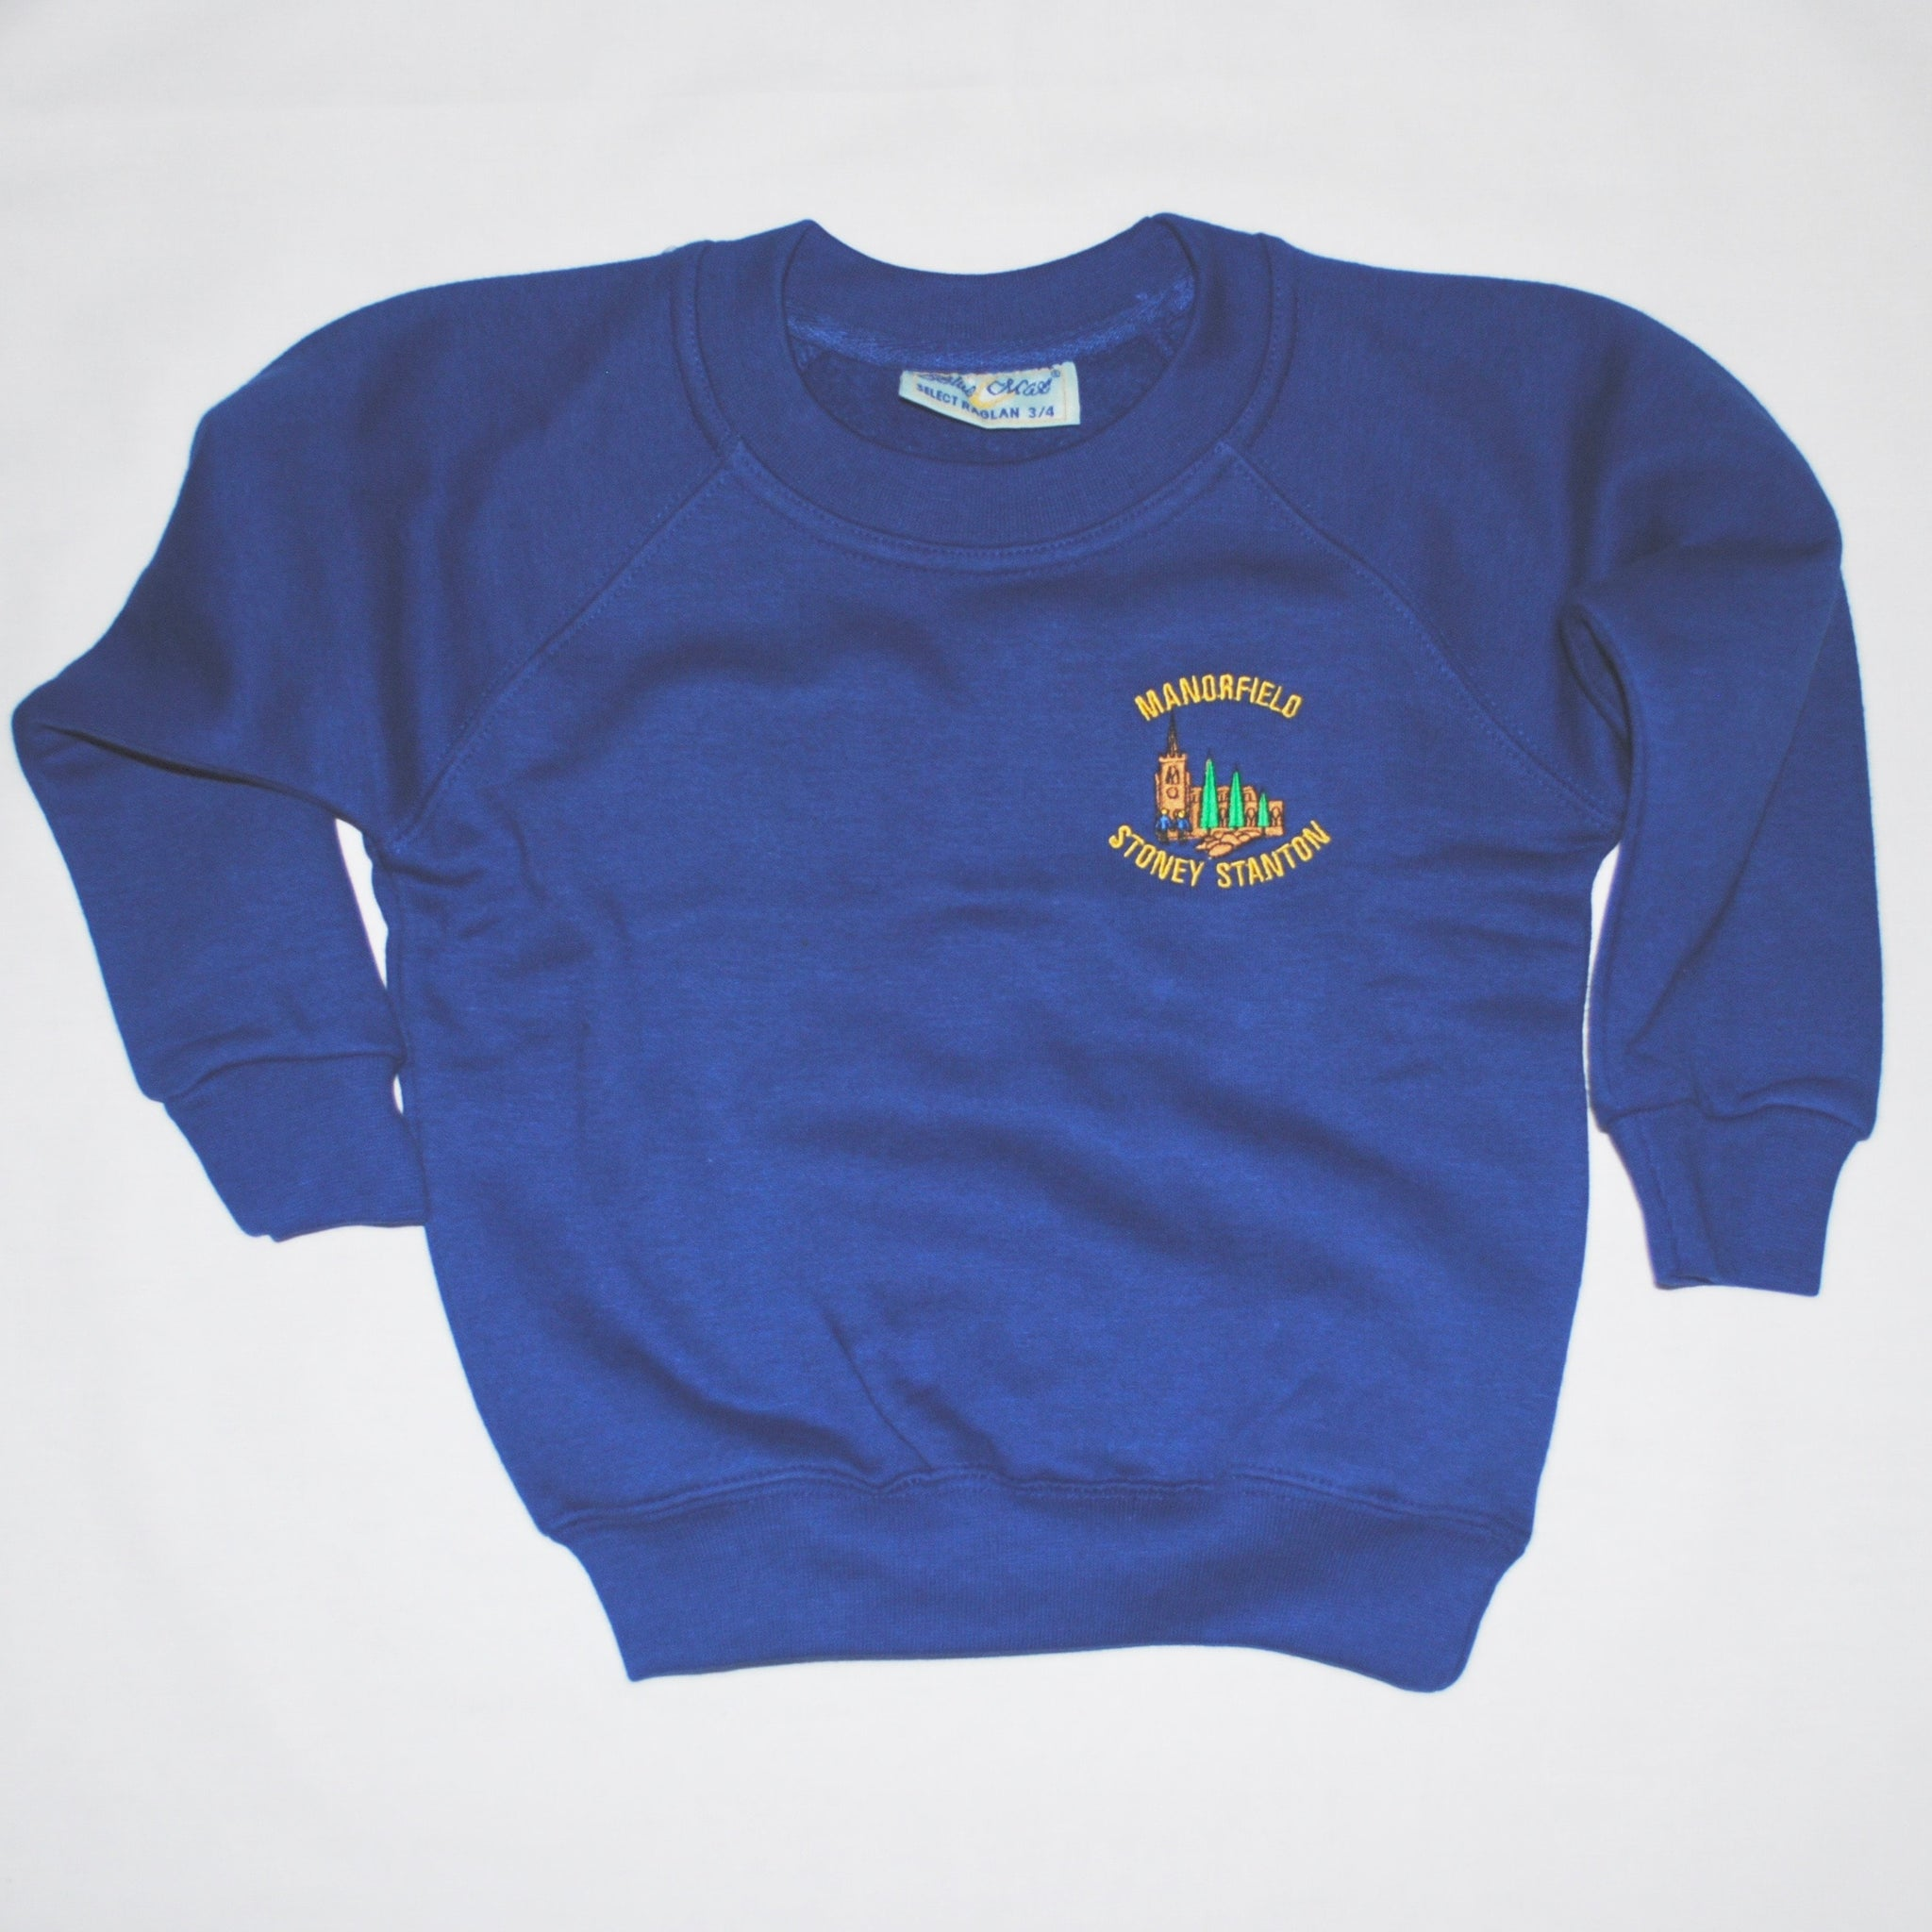 Manorfield Sweatshirt - Swifts Uniforms